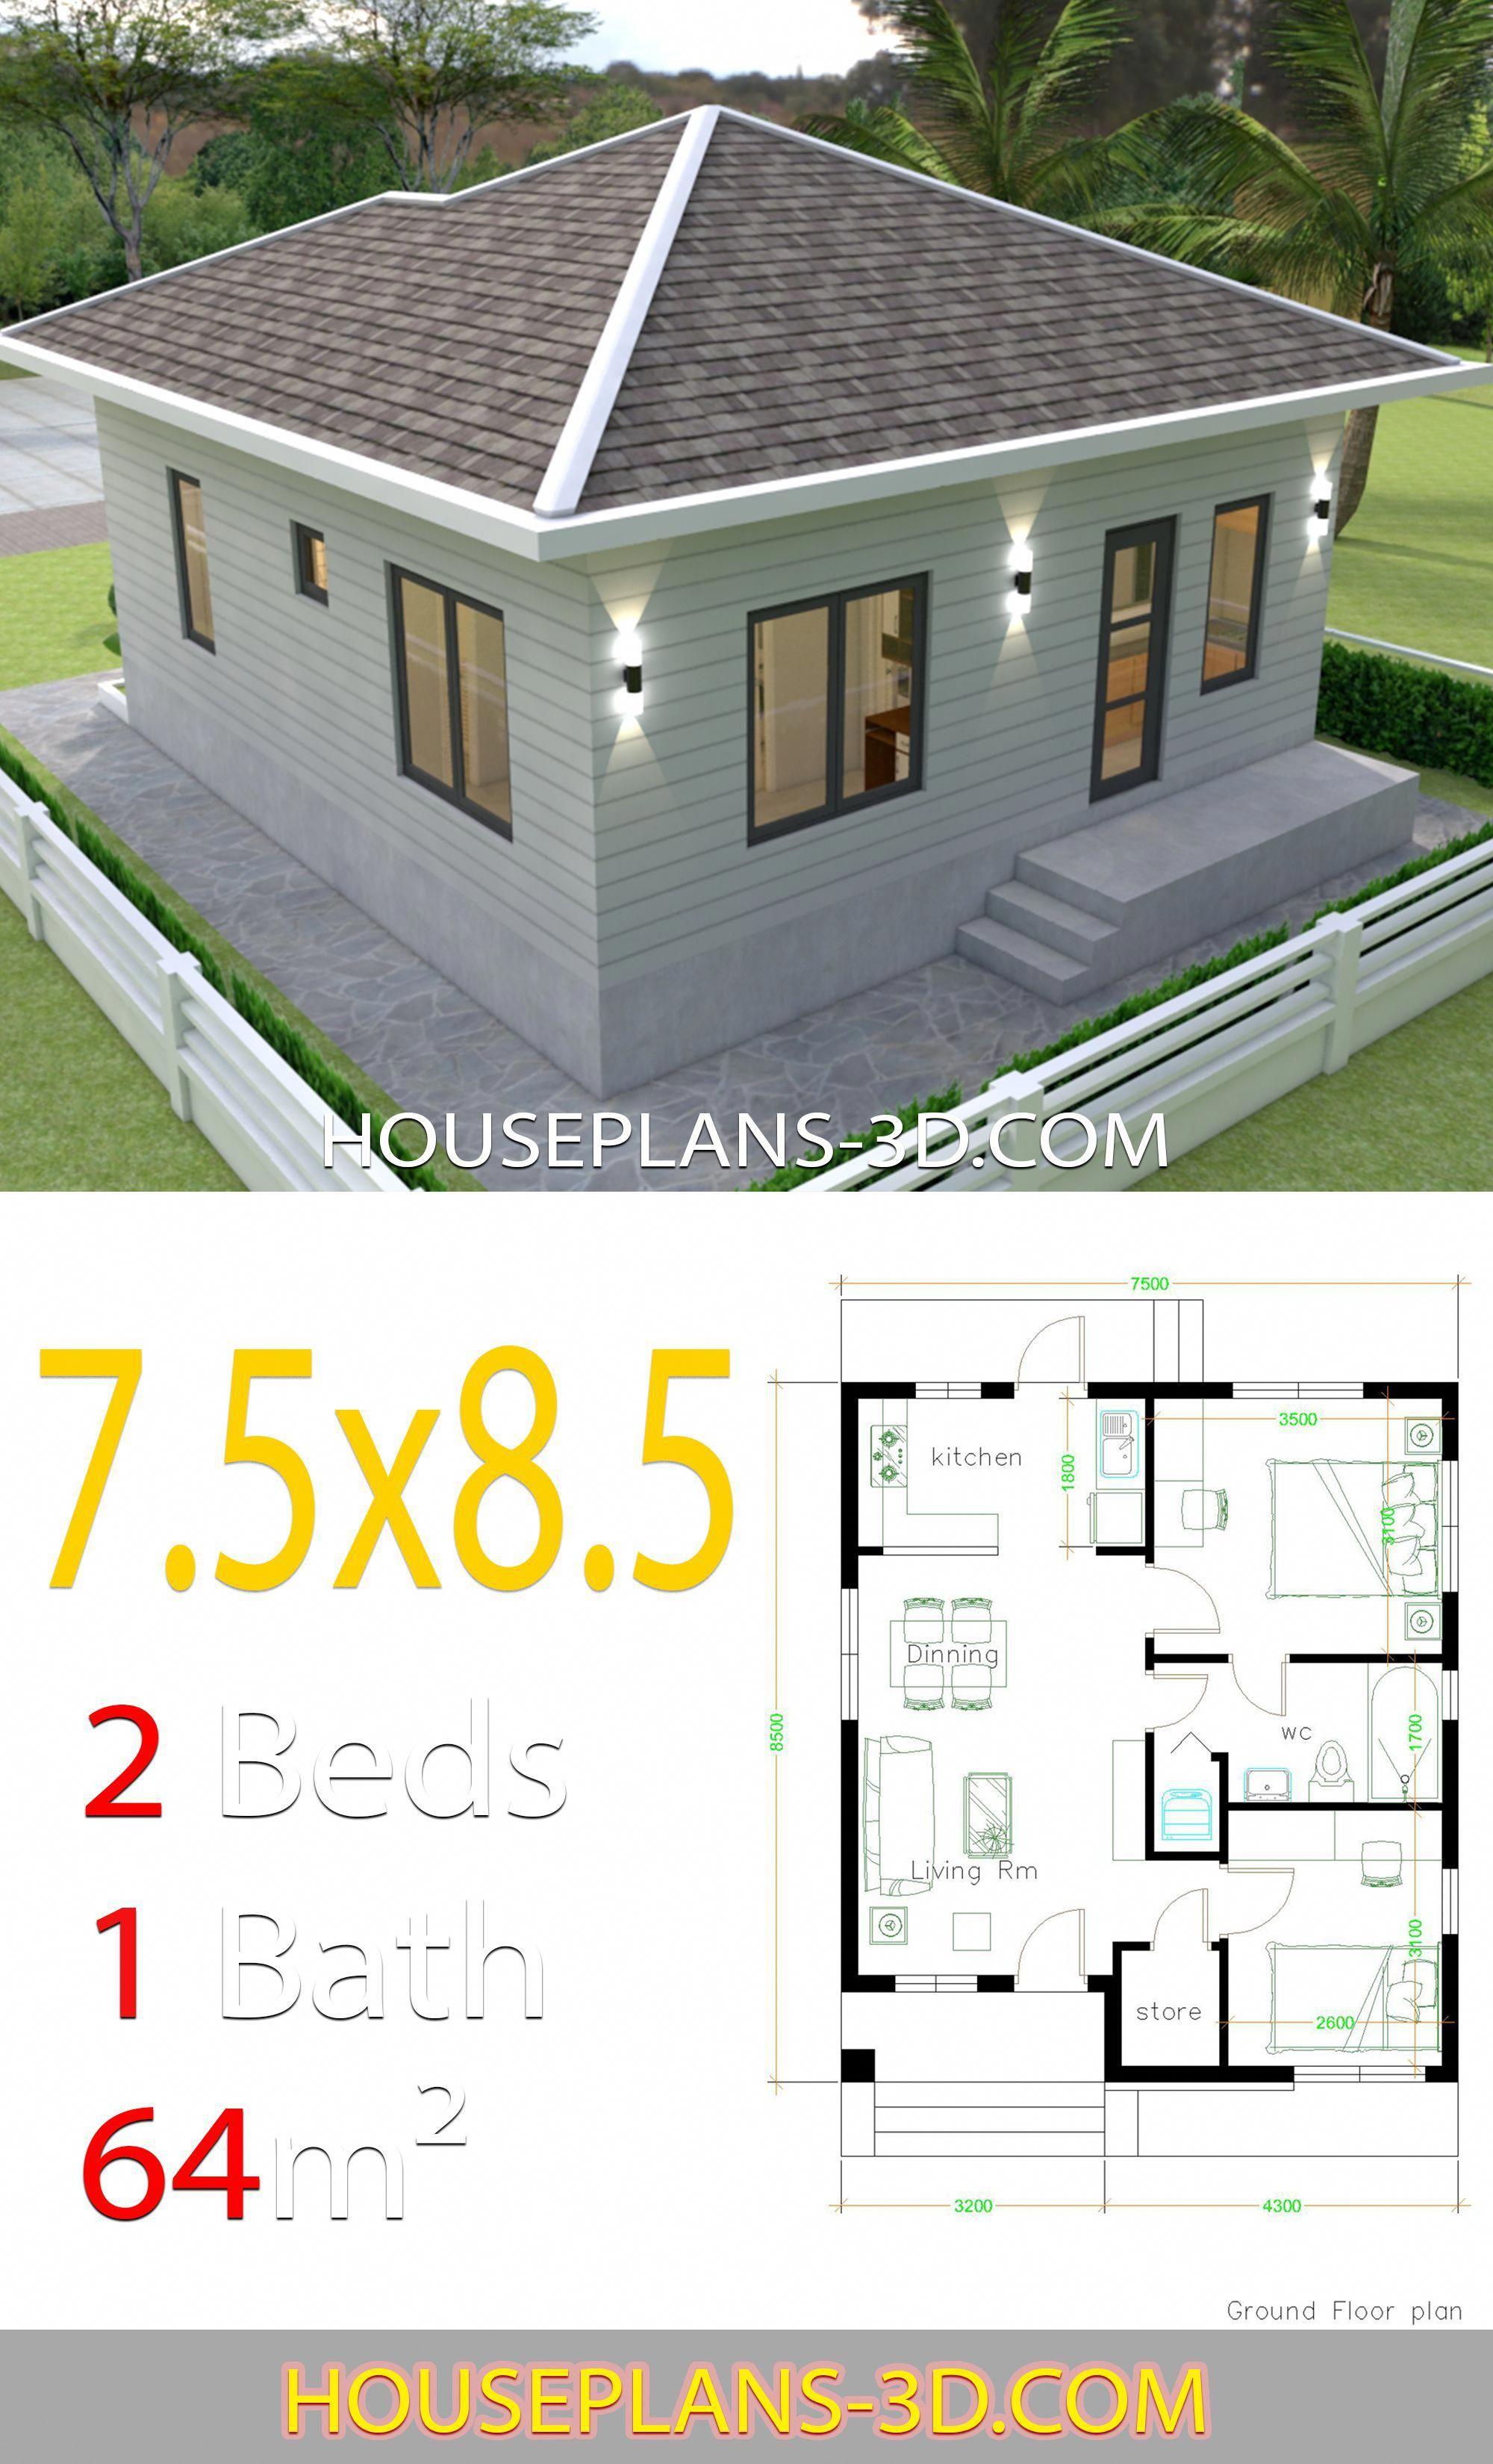 Take A Good Look At This Approach For Something Else Altogether Small House Renovation Ideas In 2020 My House Plans 2 Bedroom House Plans Simple House Design